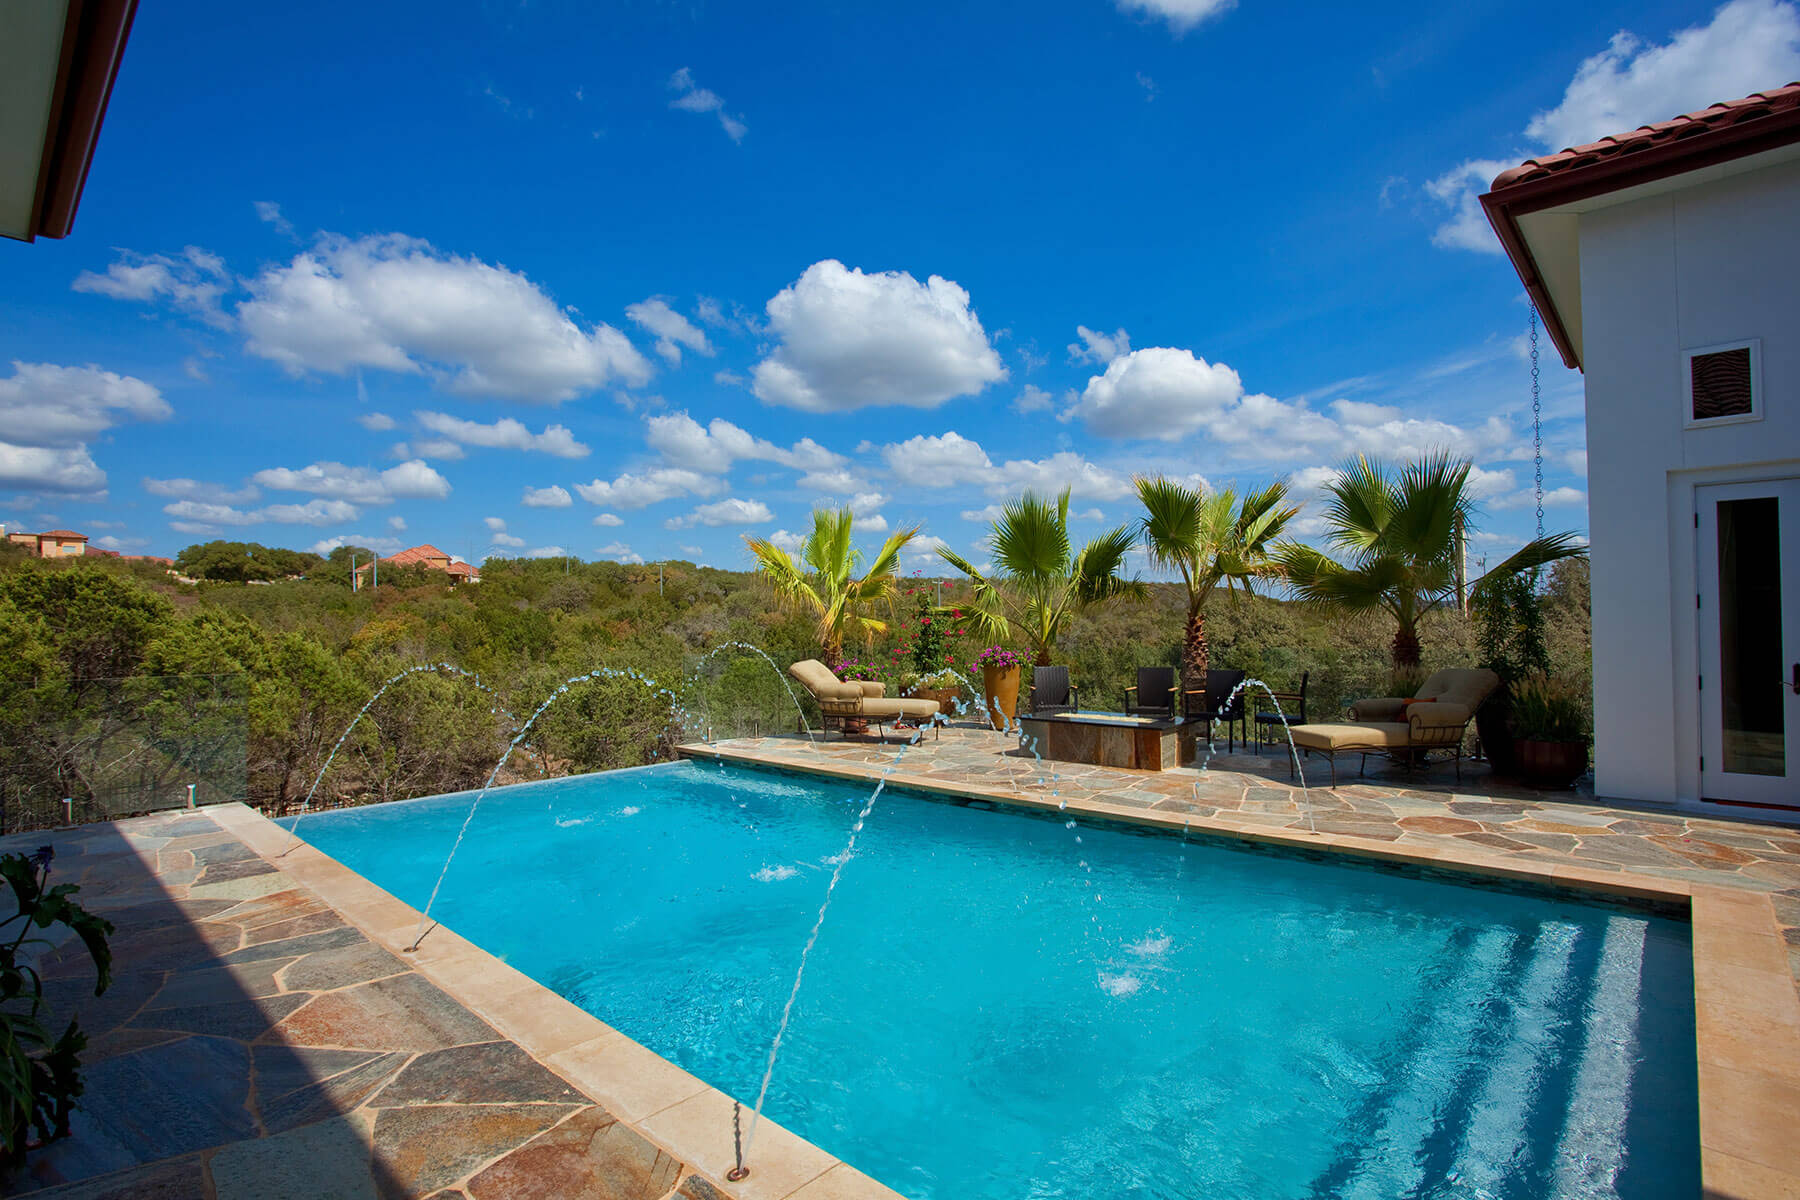 hight resolution of wiring a house cost san antonio tx